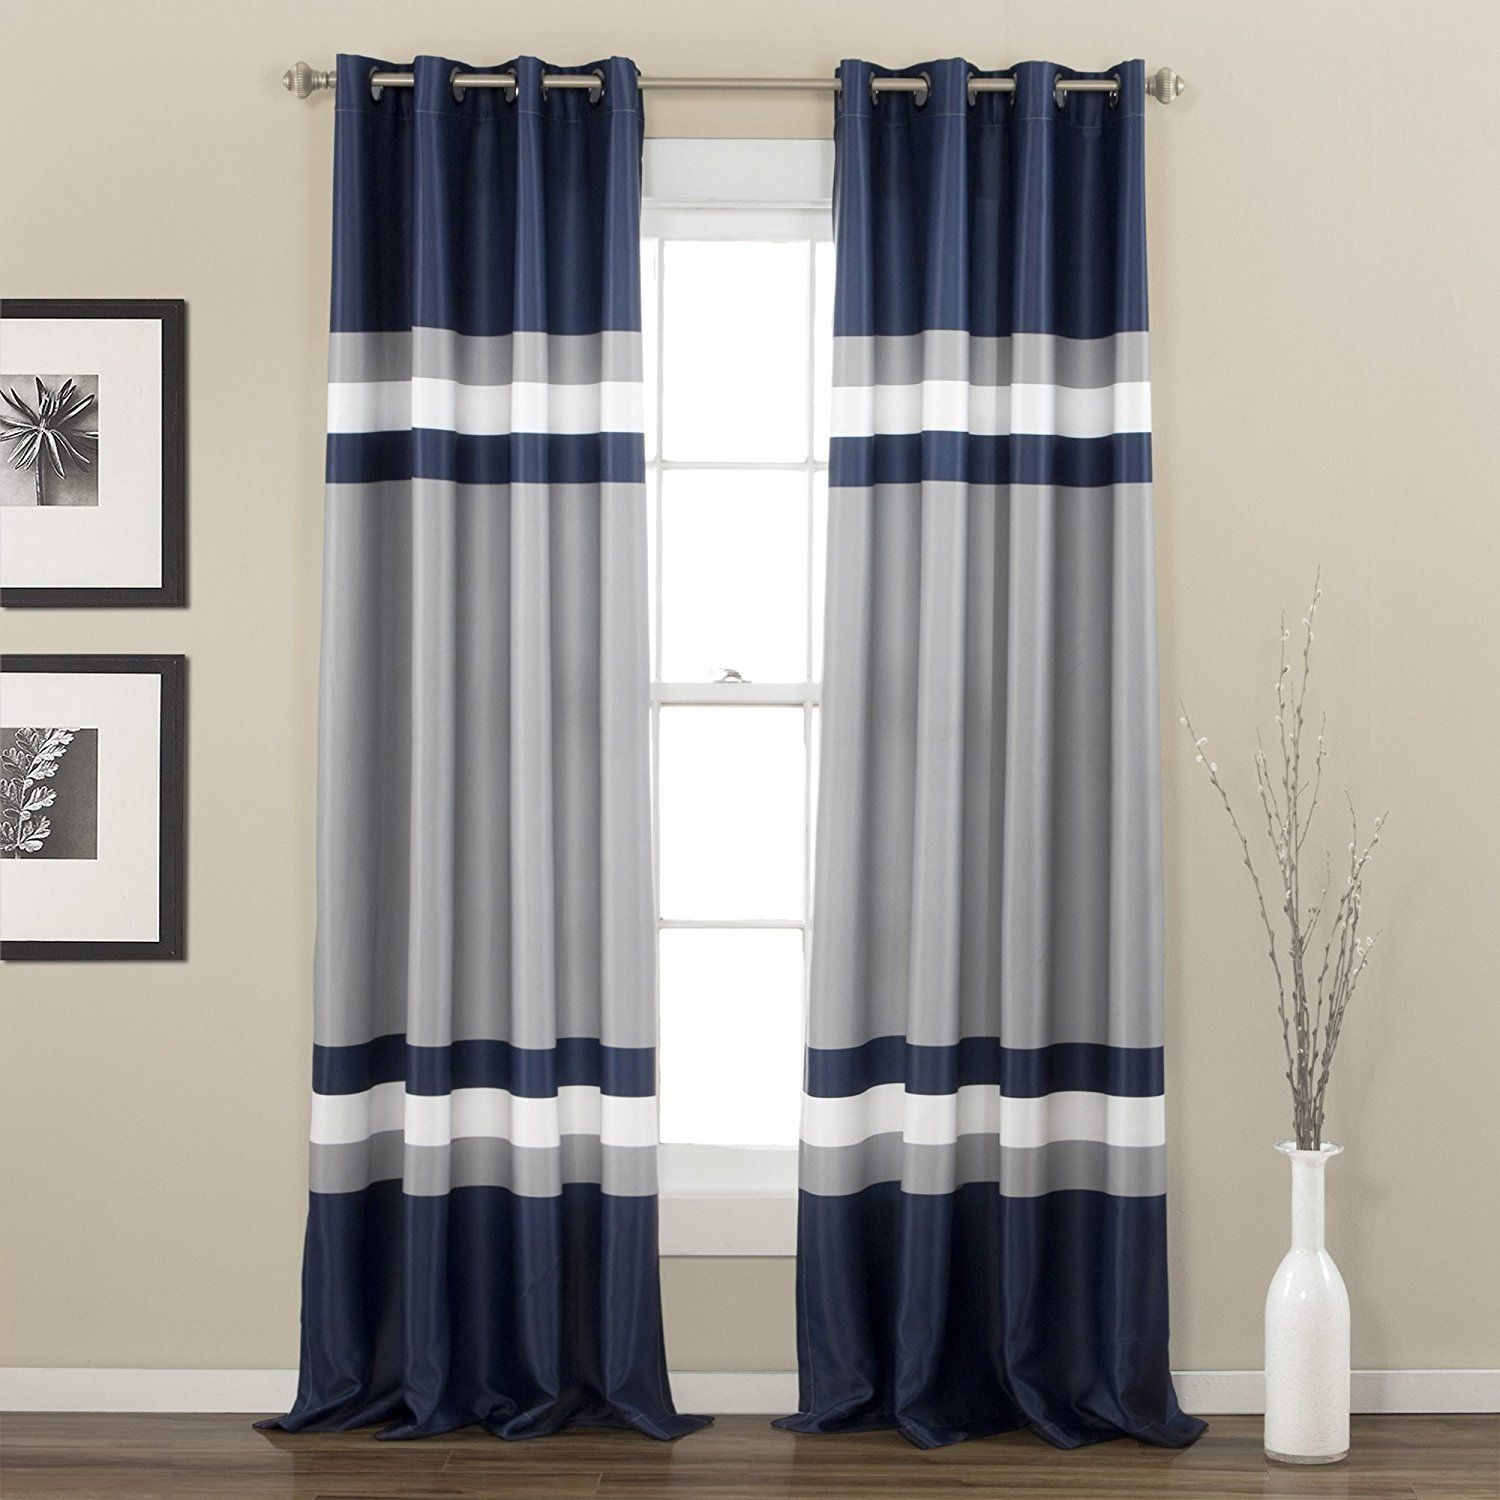 84 Inch Navy Silver Grey Rugby Stripes Curtains Pair Panel Set Blue Color Drapes Cabana Striped Pattern Window Treatments Naut Striped Room Lush Decor Curtains